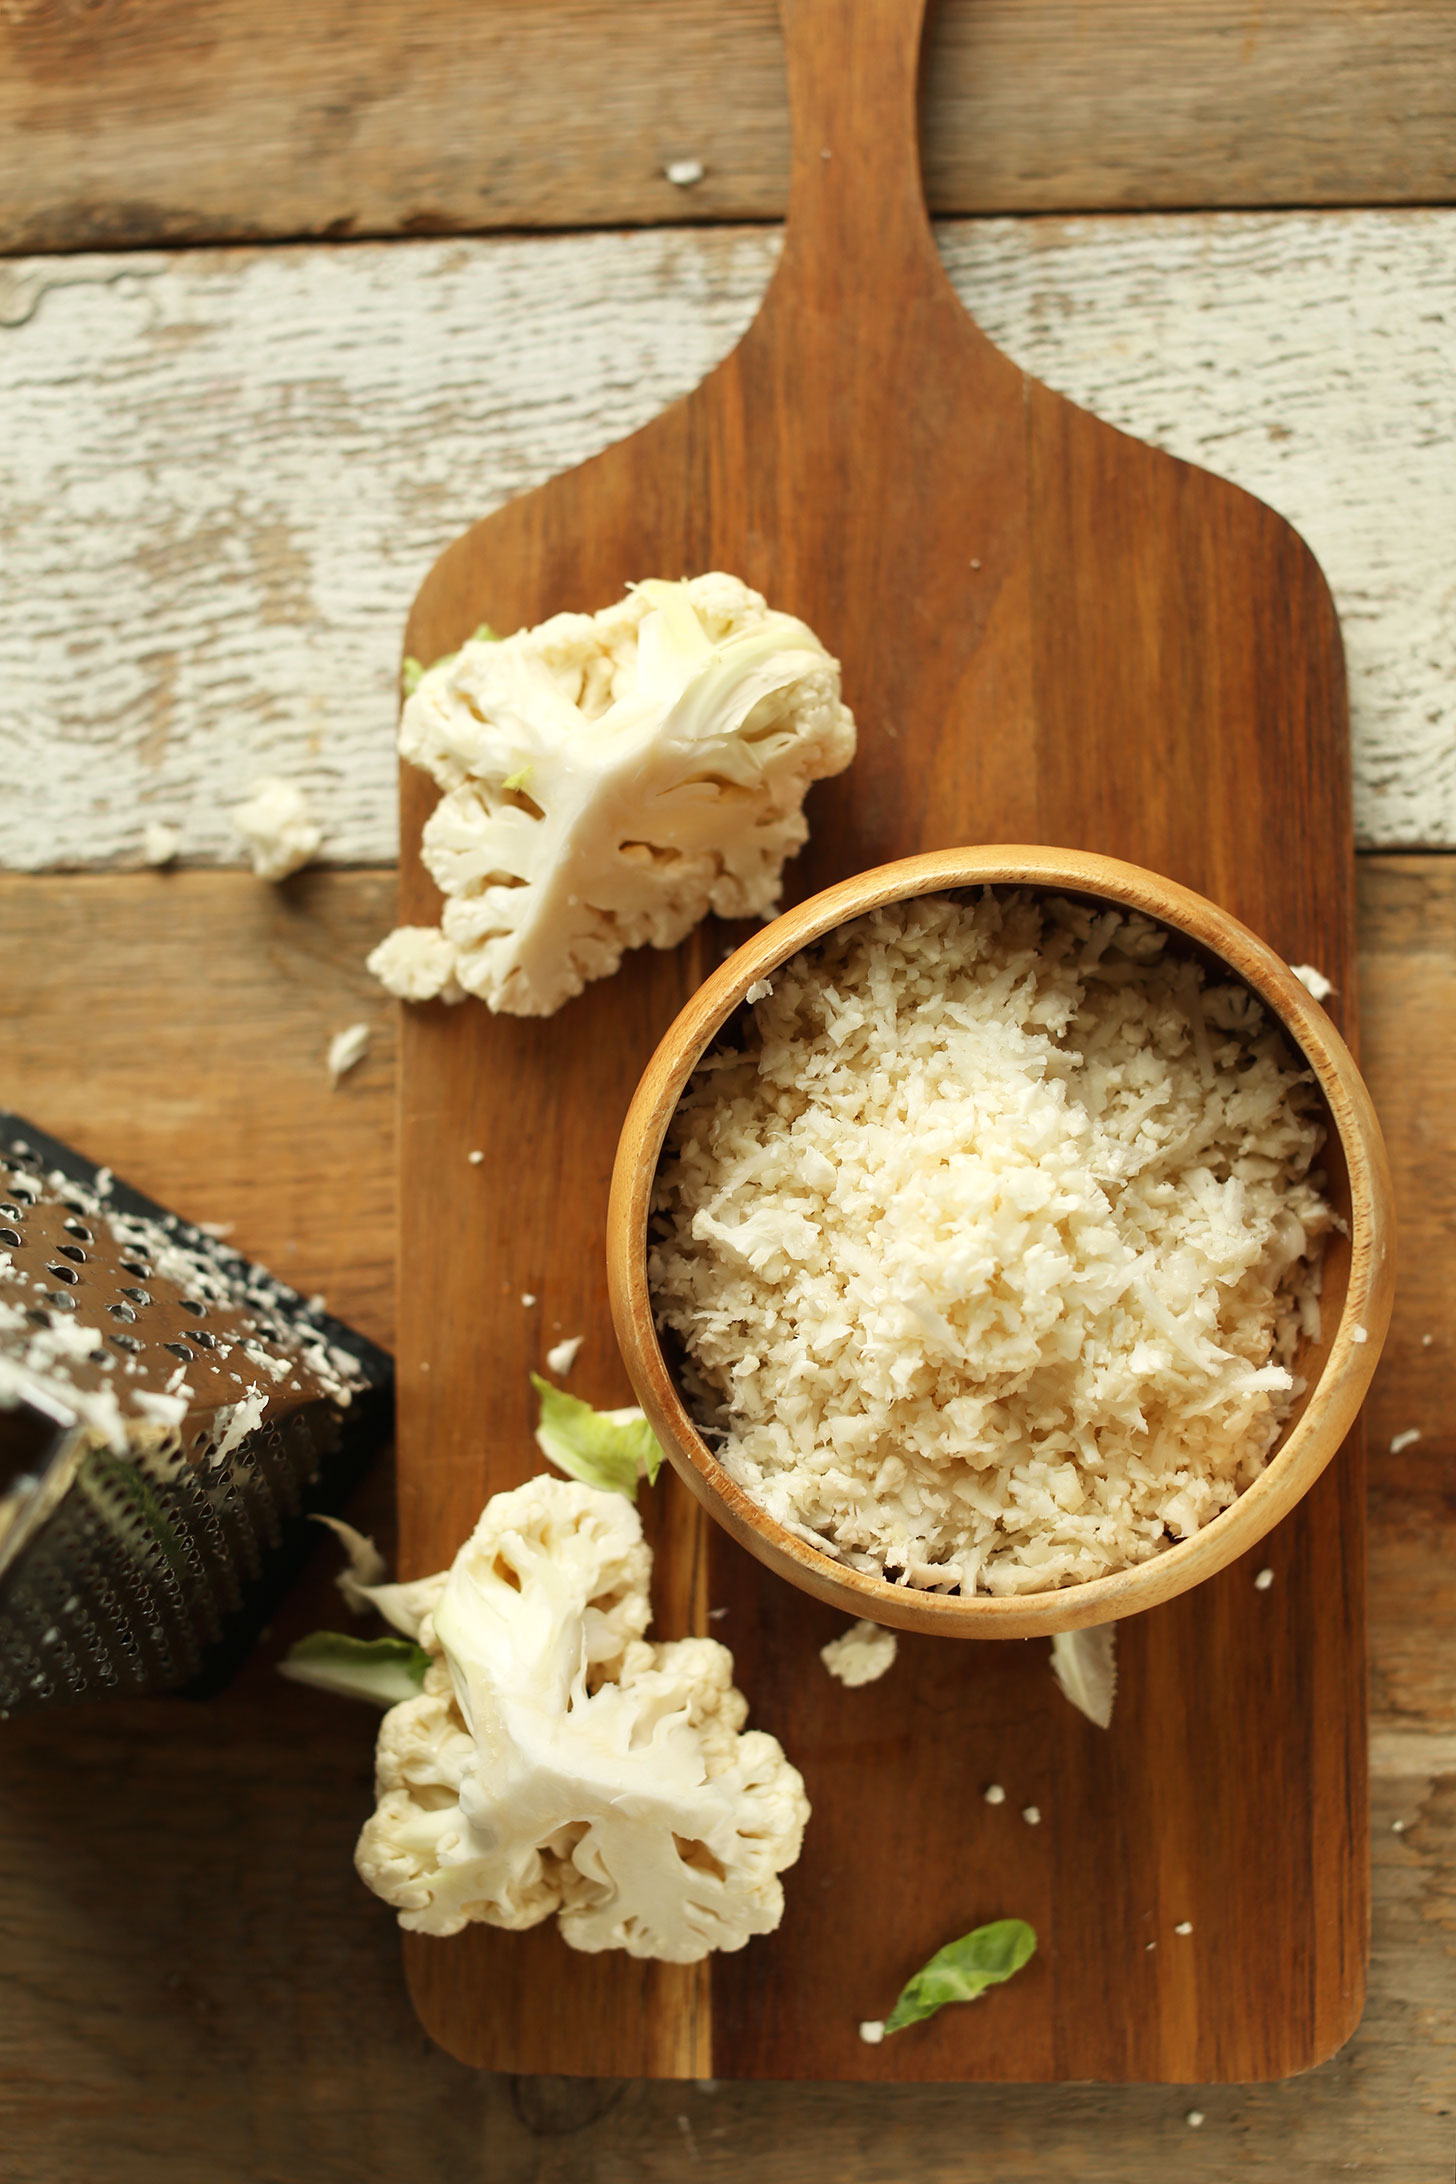 Bowl of cauliflower rice, a grater, and pieces of chopped cauliflower ready to be grated